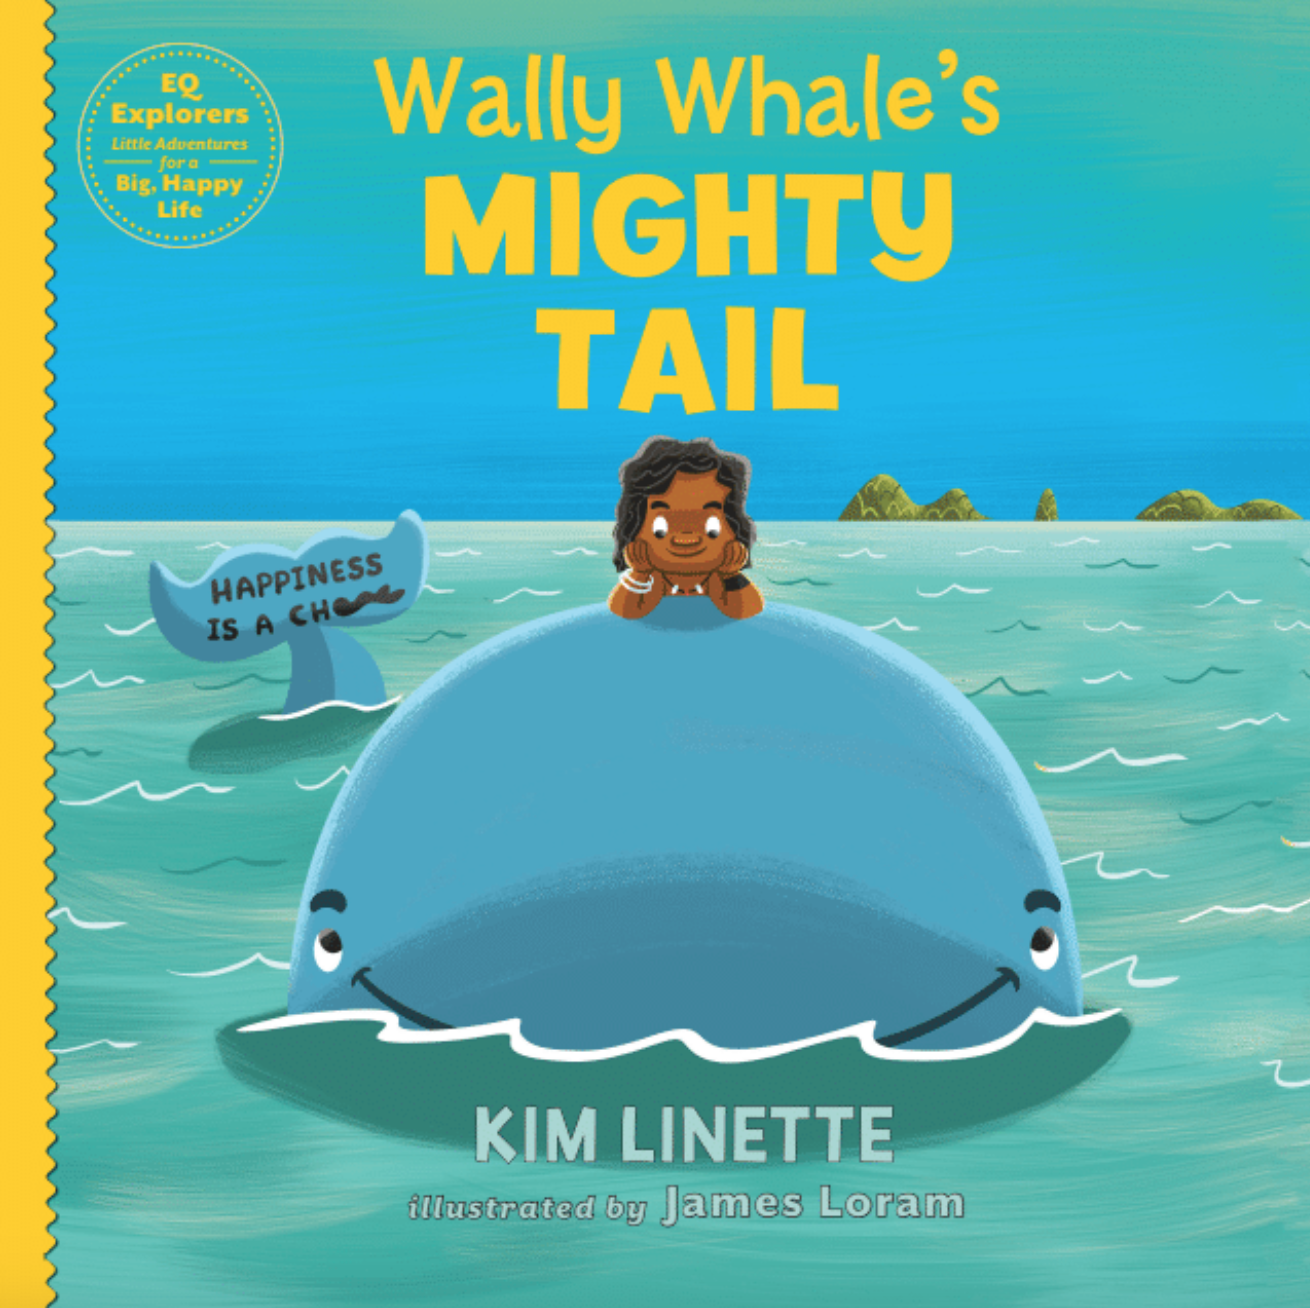 Wally Whale's Mighty Tail. An adventurous children's story to teach kids about emotional intelligence, attitude and that happiness is a choice (EQ Explorers Book Series)